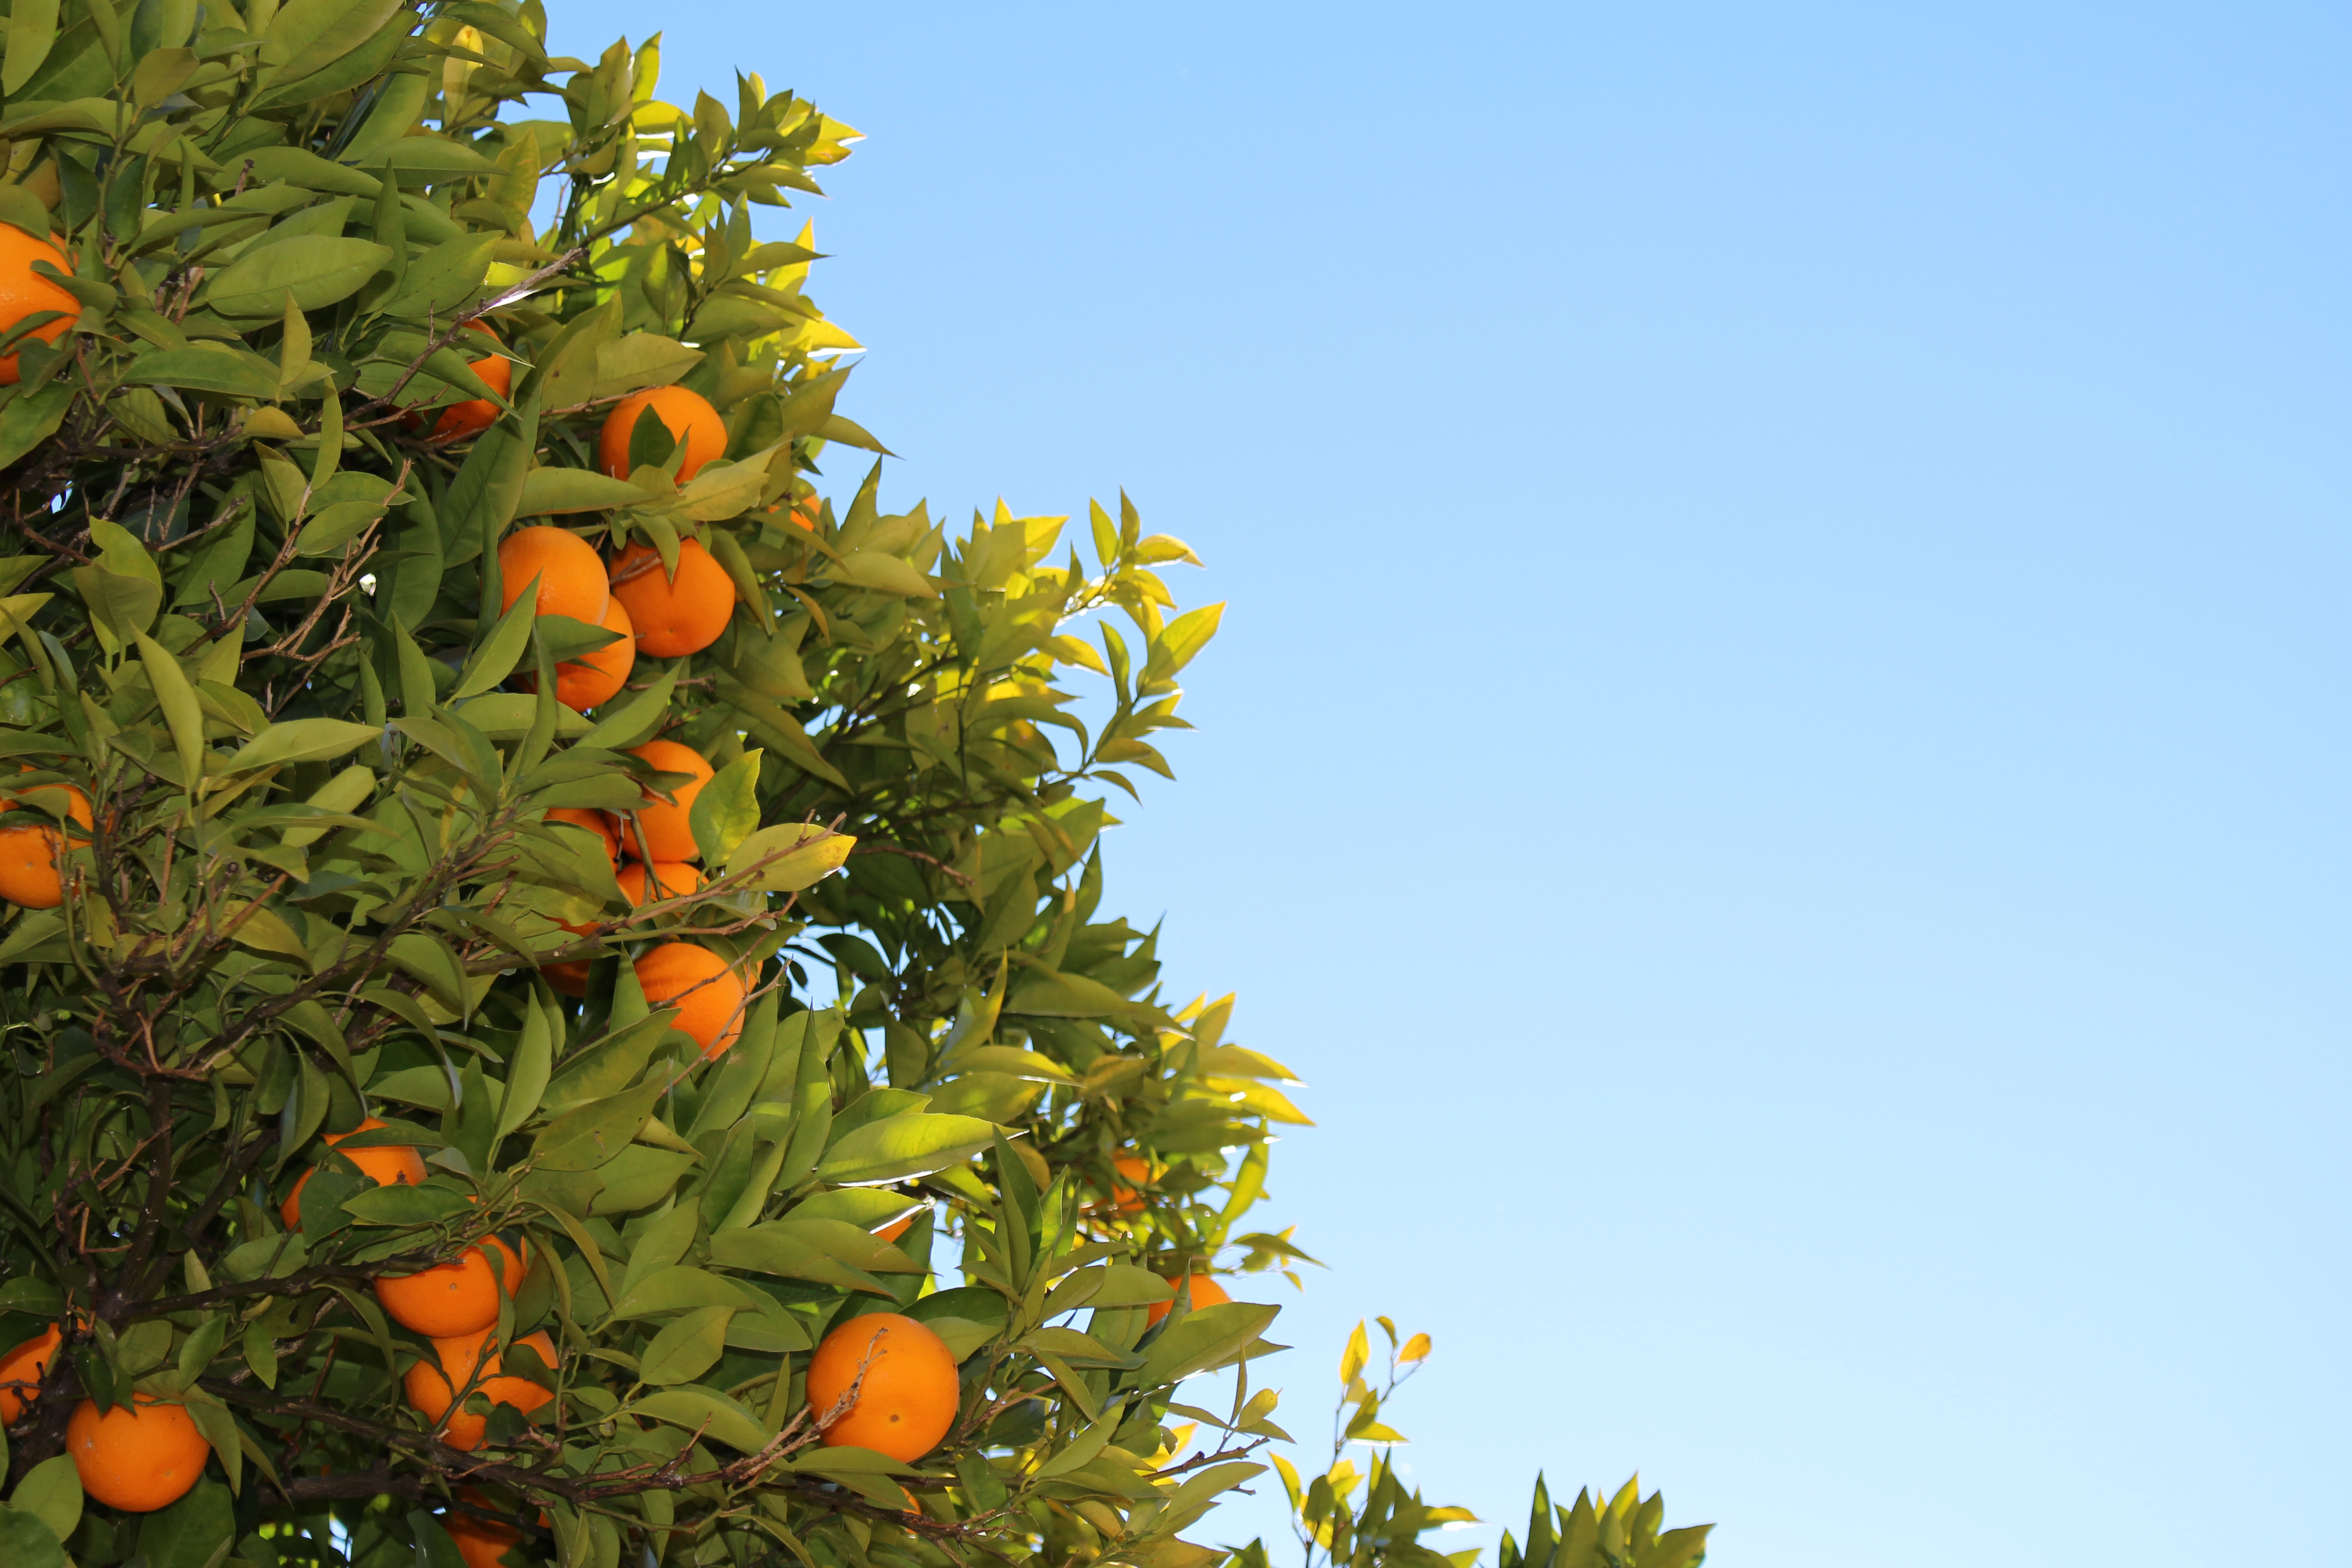 orange fruits in tree